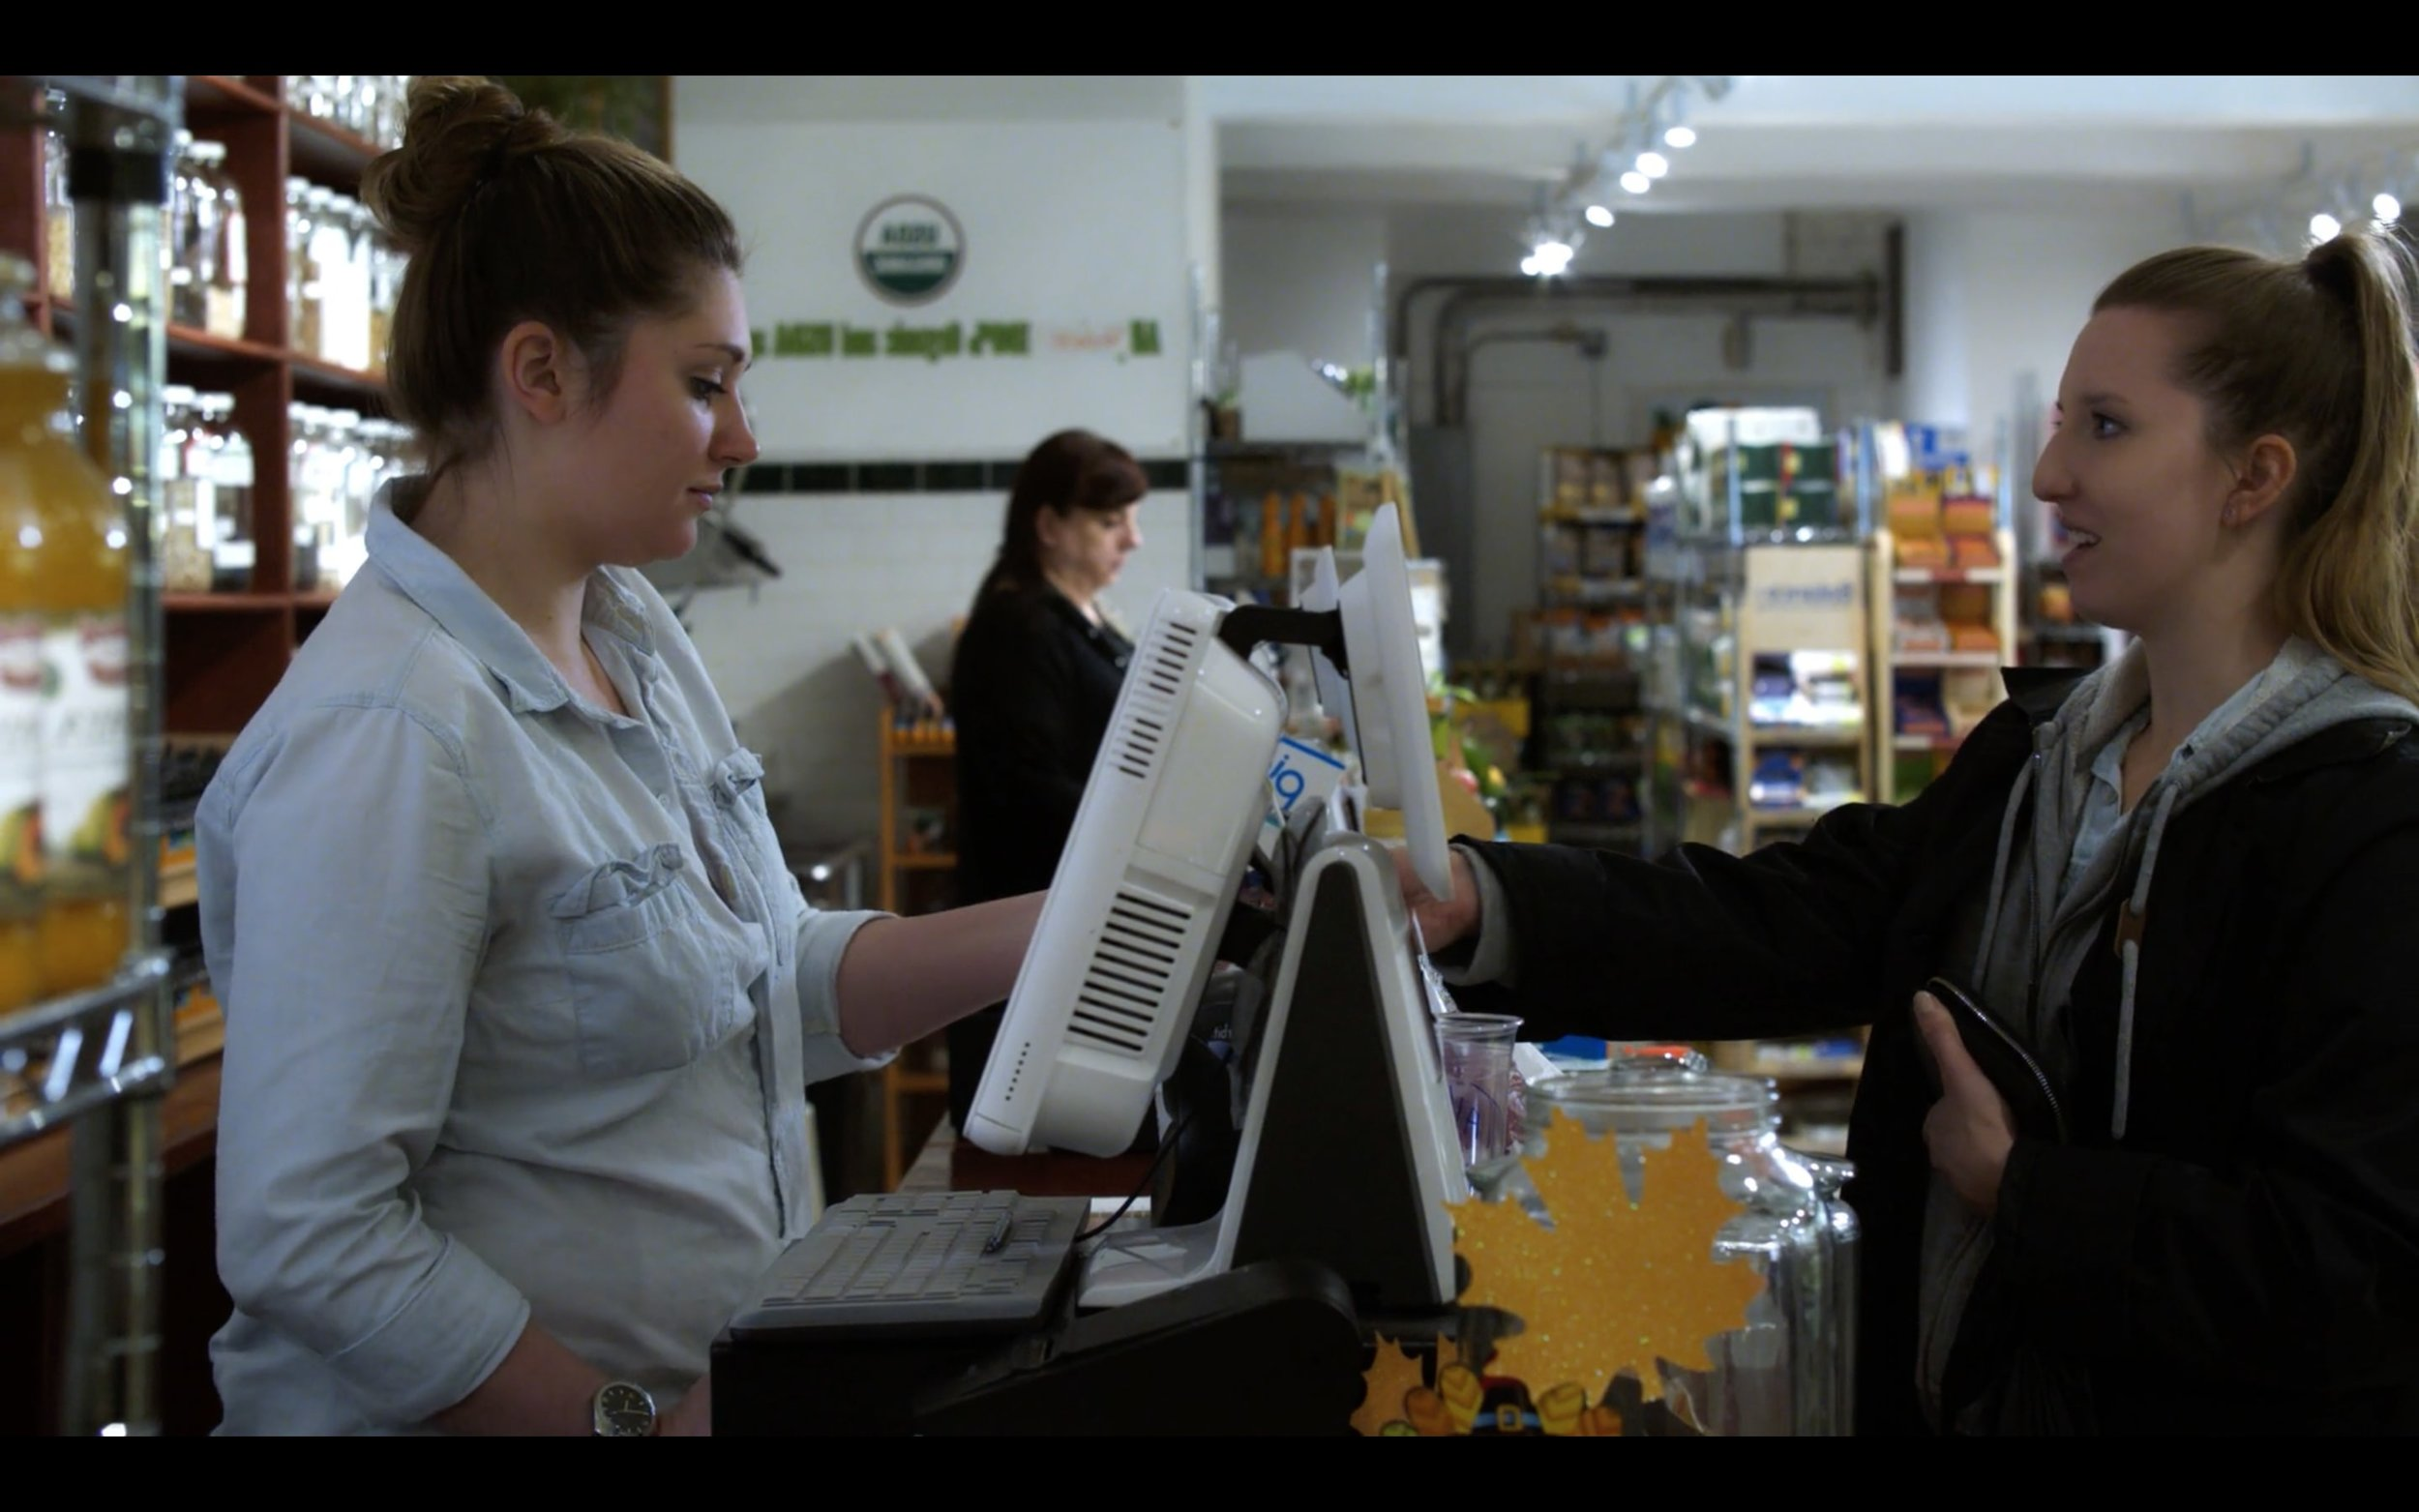 A rare moment of positive connection in our character's isolated New York City life. Cashier, Lindsey White. Young Woman, Katy Lueck. DP, Dina Graham